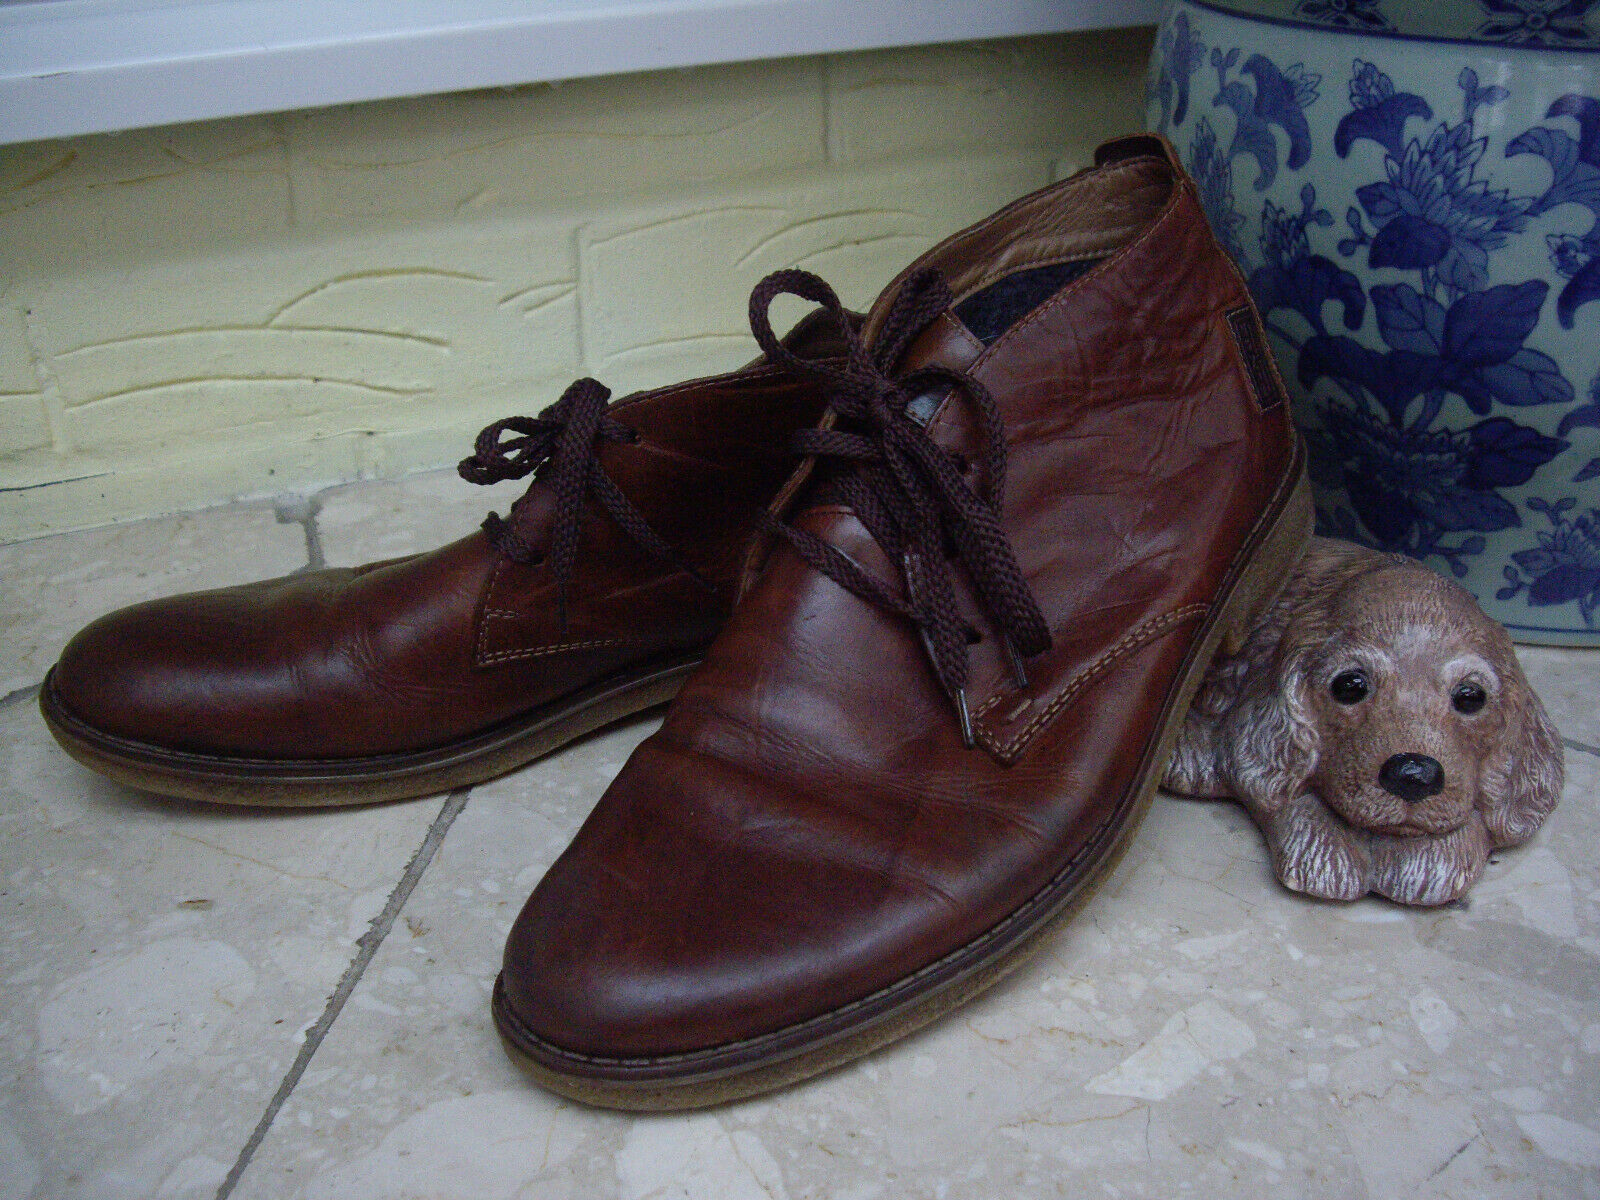 RIEKER BROWN LEATHER ANKLE BOOTS MENS CHESTNUT DESERT OR CHUKKA BOOTS ~ 10